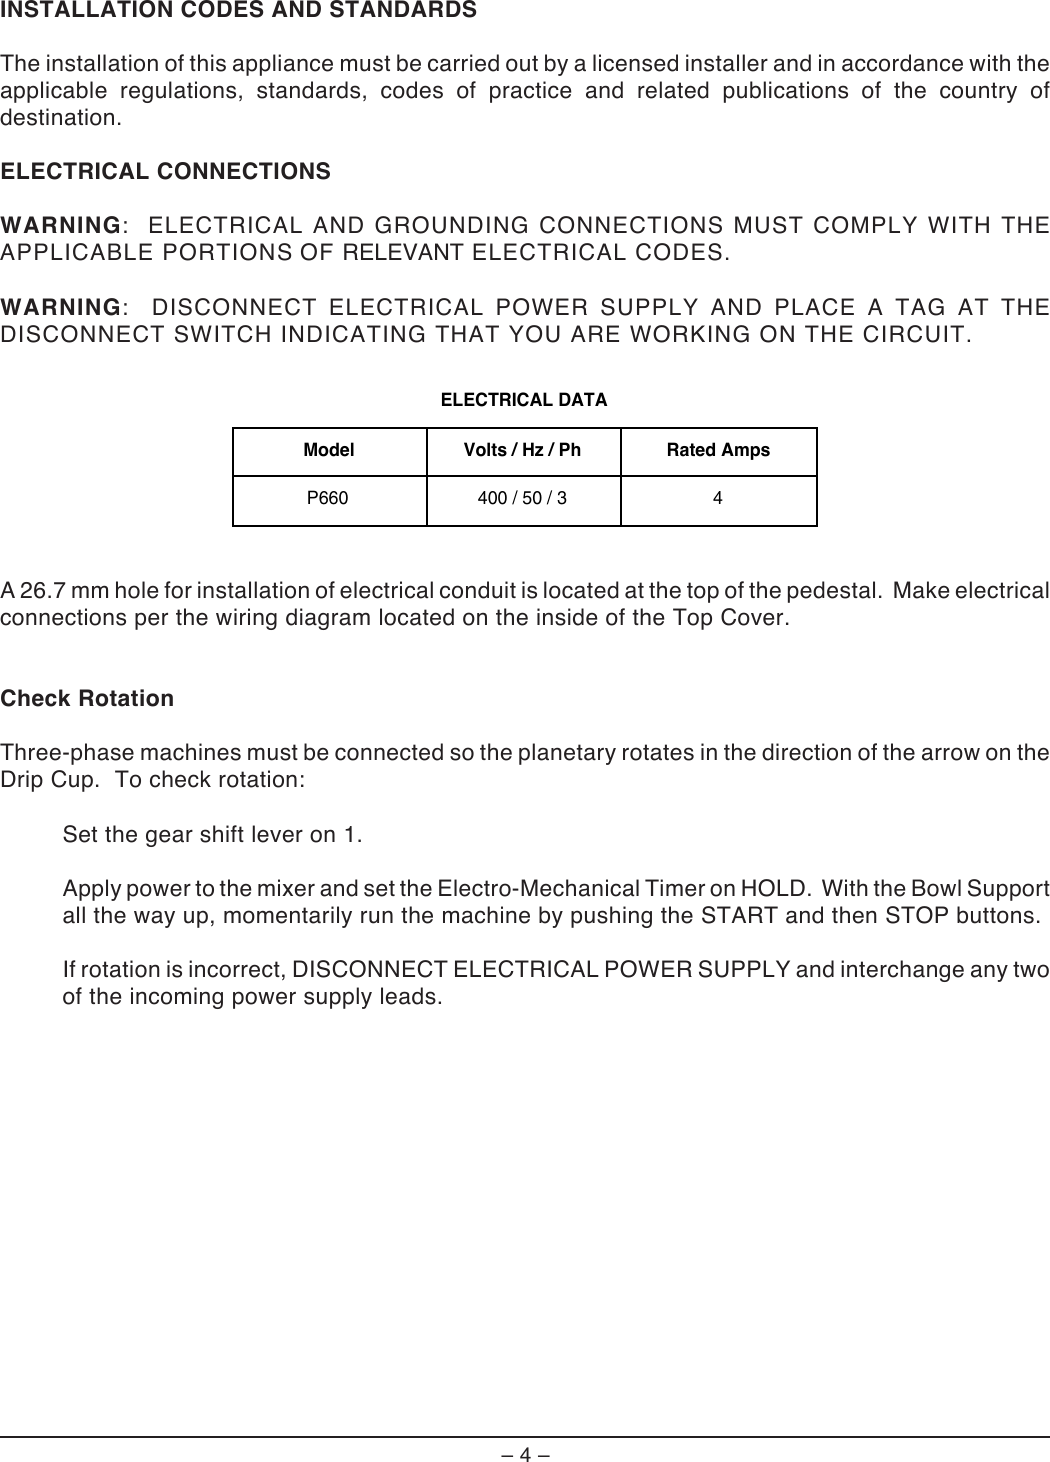 Hobart P660 Users Manual Wiring Diagram Page 4 Of 12